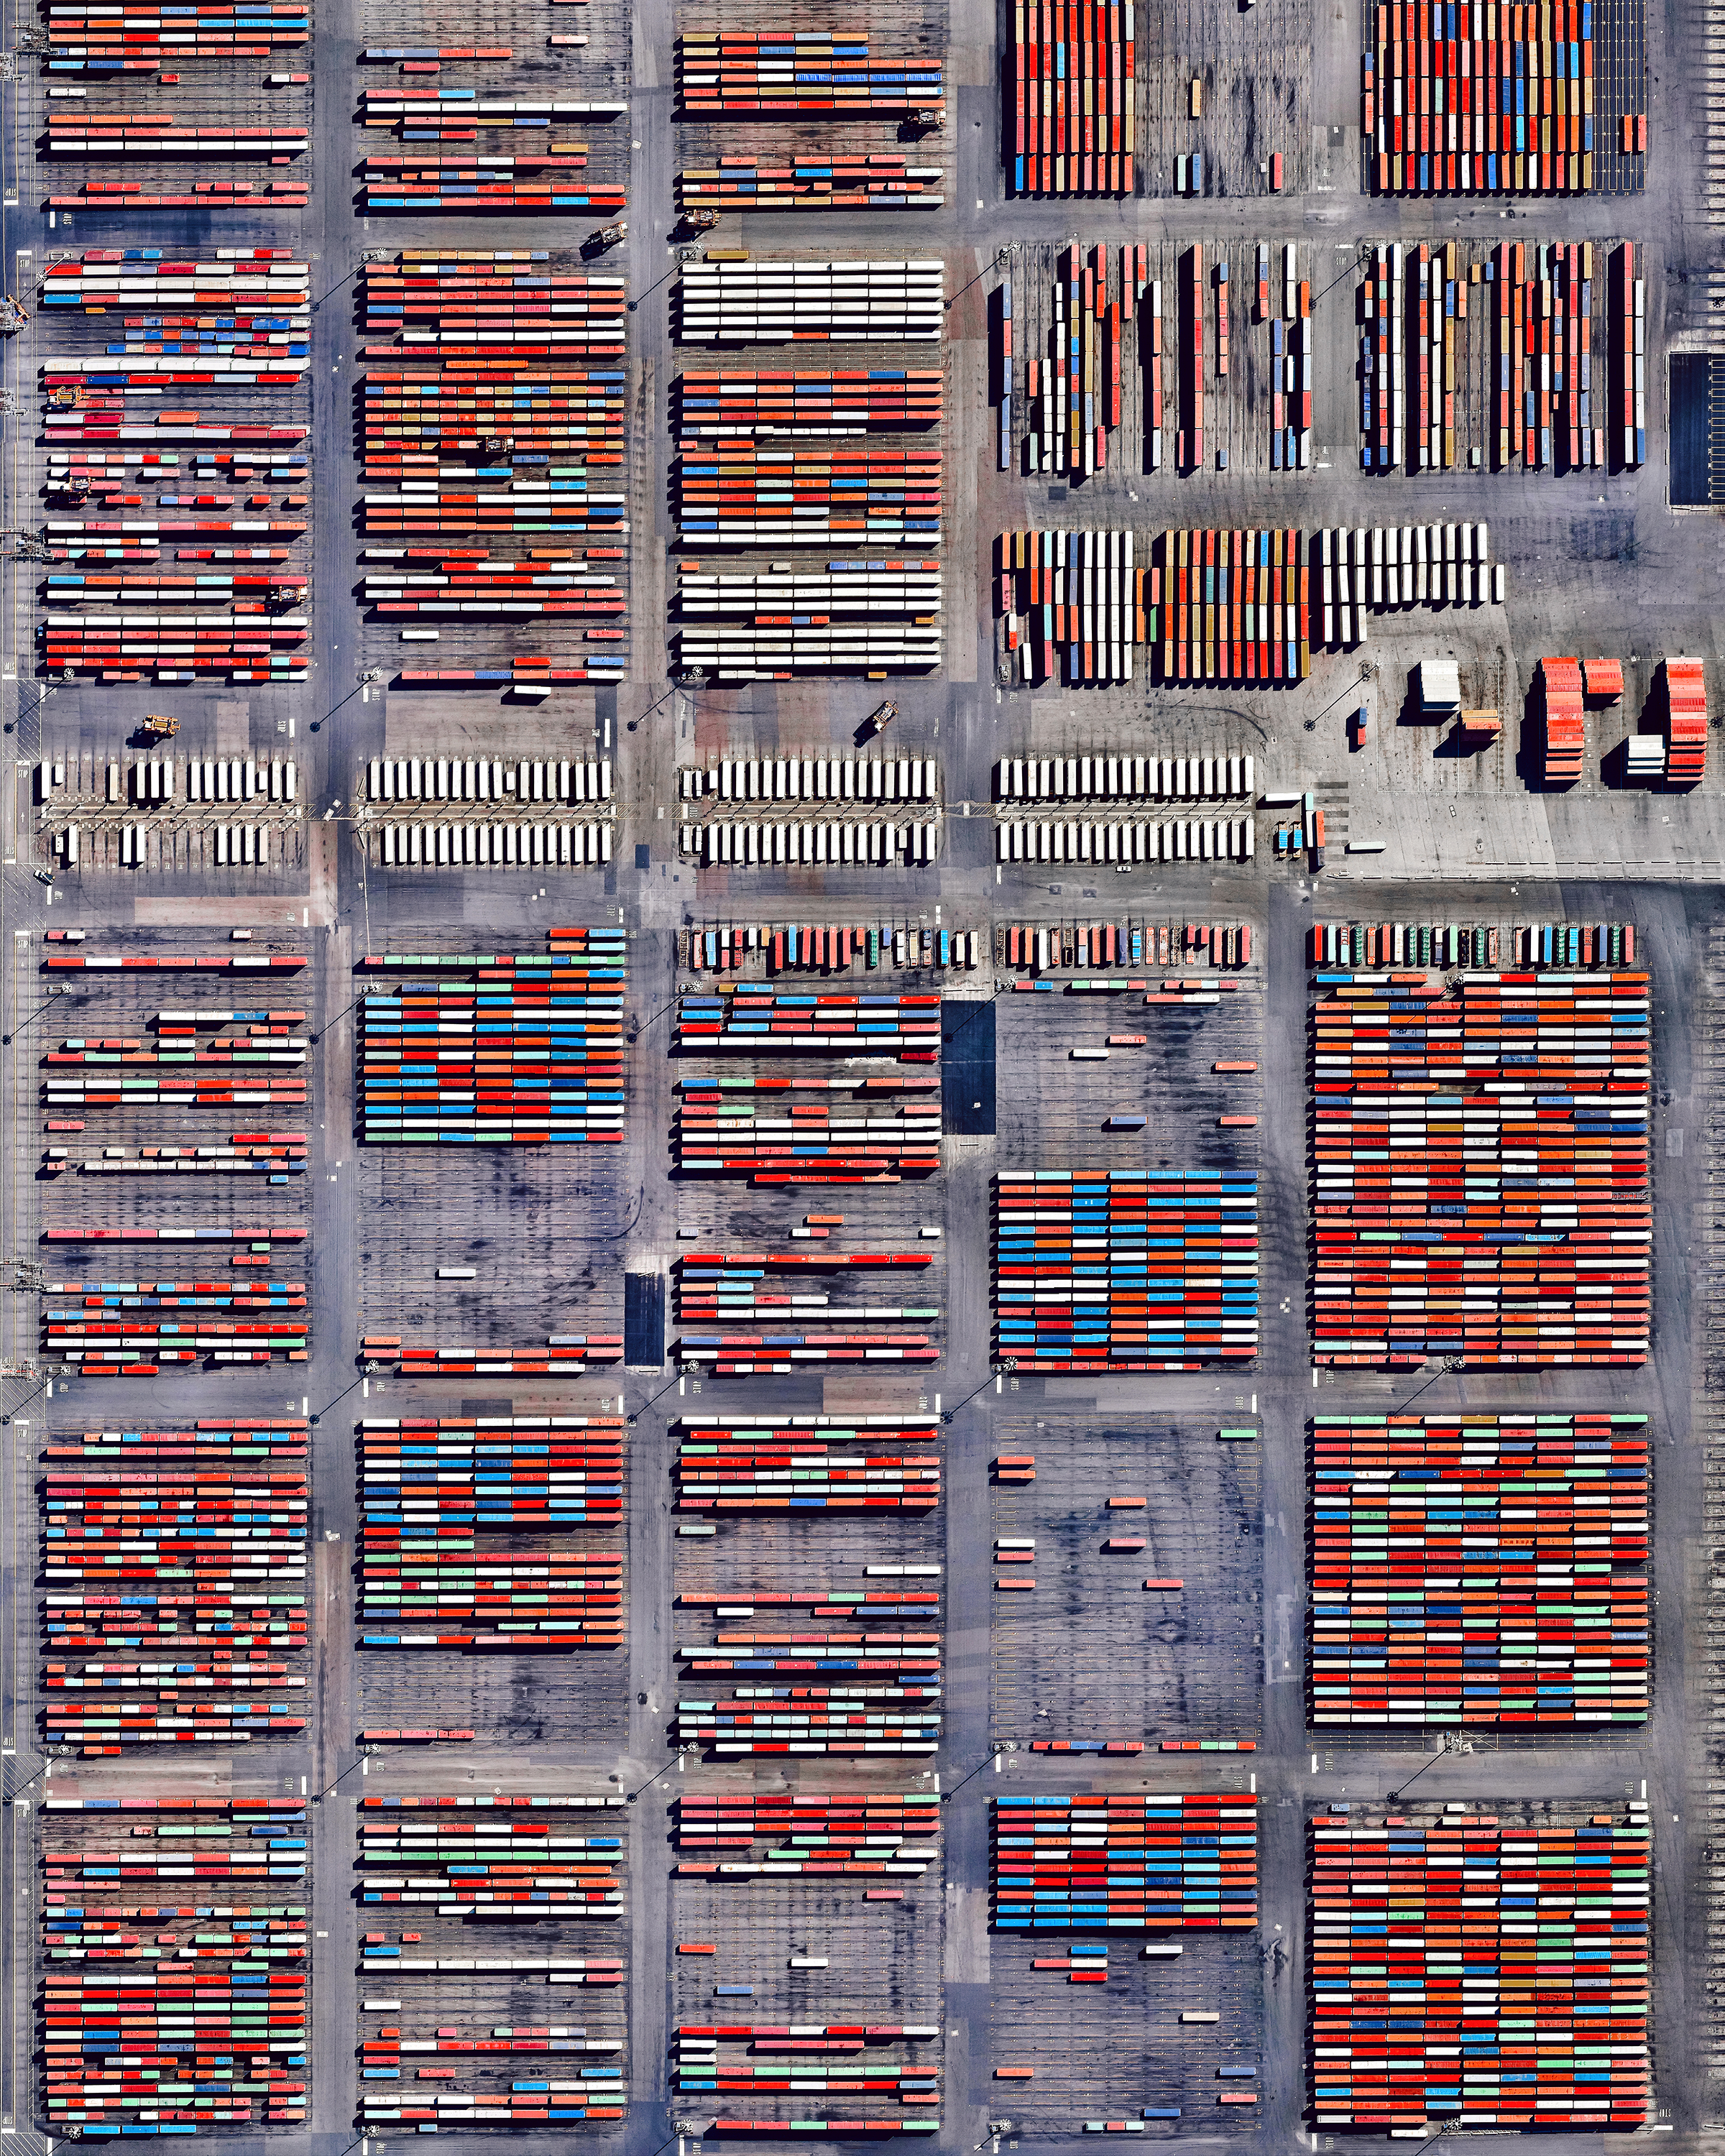 Shipping containers are stacked at the Port Newark Container Terminal in Newark, New Jersey. The massive facility handles more than 1.3 million shipping containers every year and is in the midst of an expansion project that will add capacity for another 1 million containers per year by 2030.  40.681667°, -74.150556°  Source imagery: Maxar Technologies